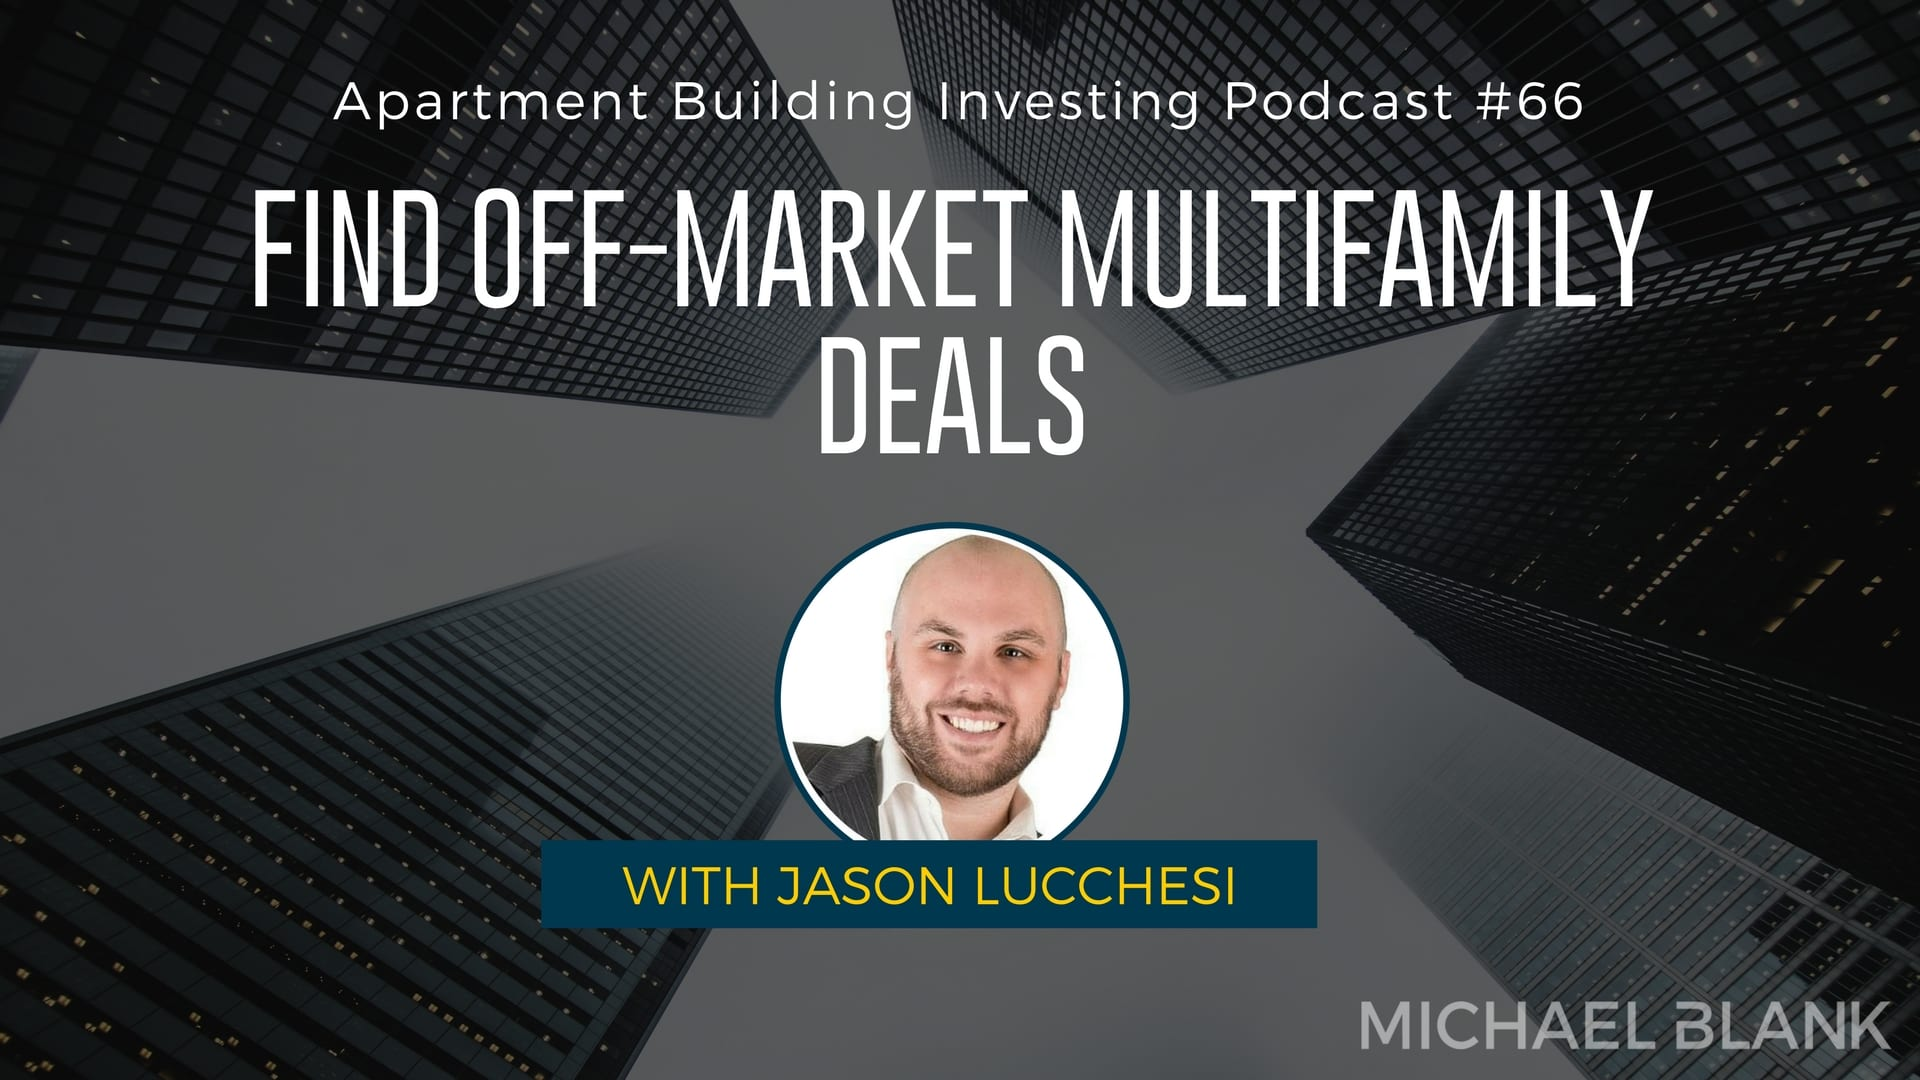 MB 066: Find Off-Market Multifamily Deals – With Jason Lucchesi